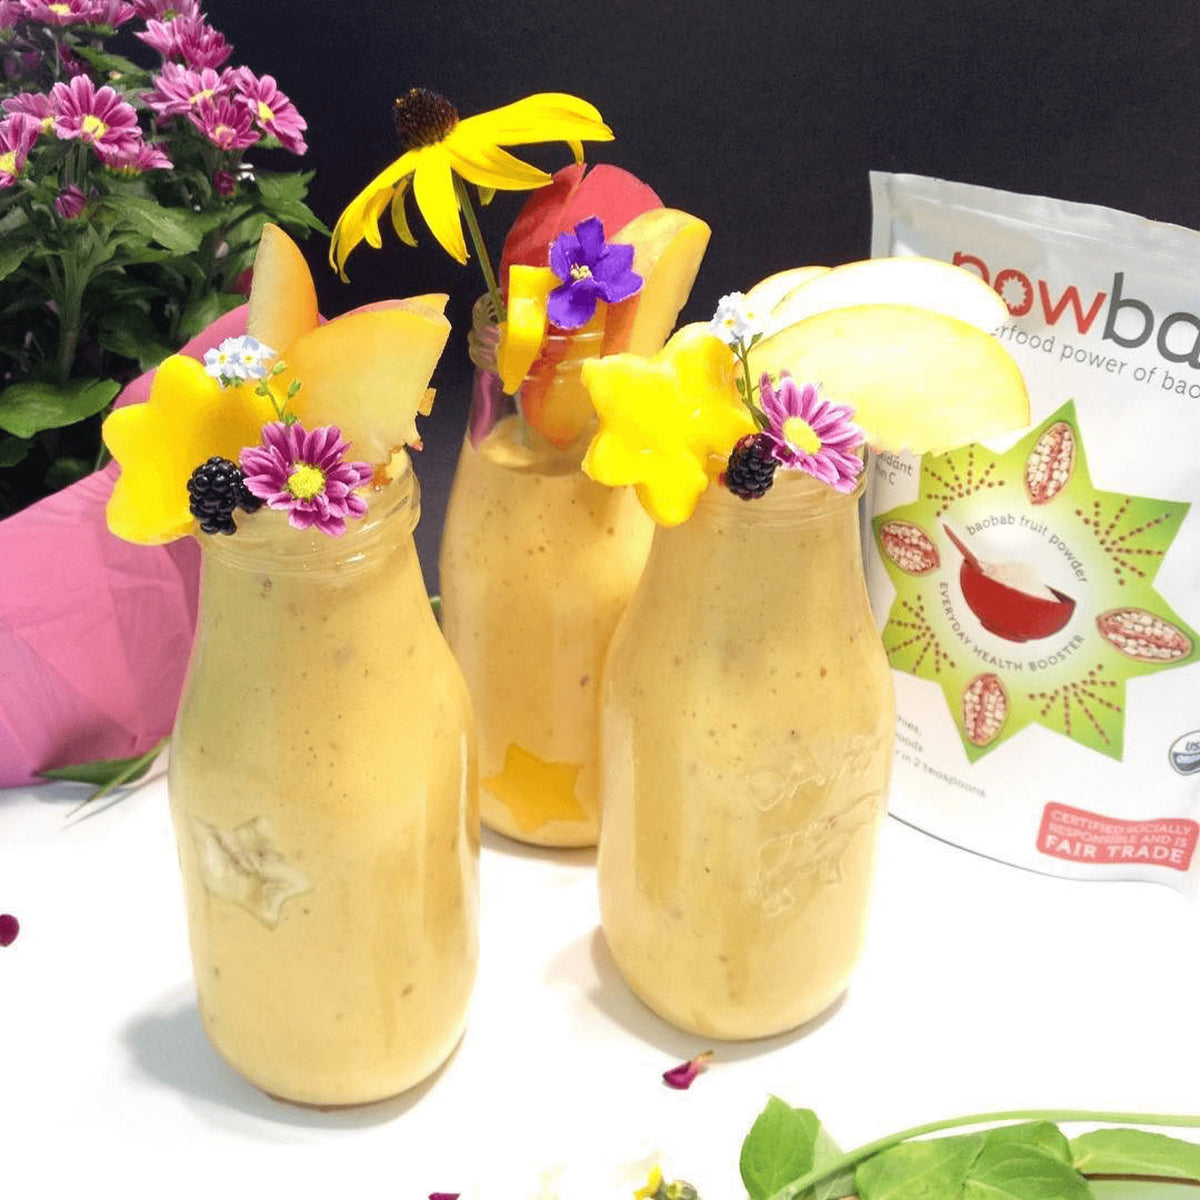 Baobab Mango Peach Smoothie